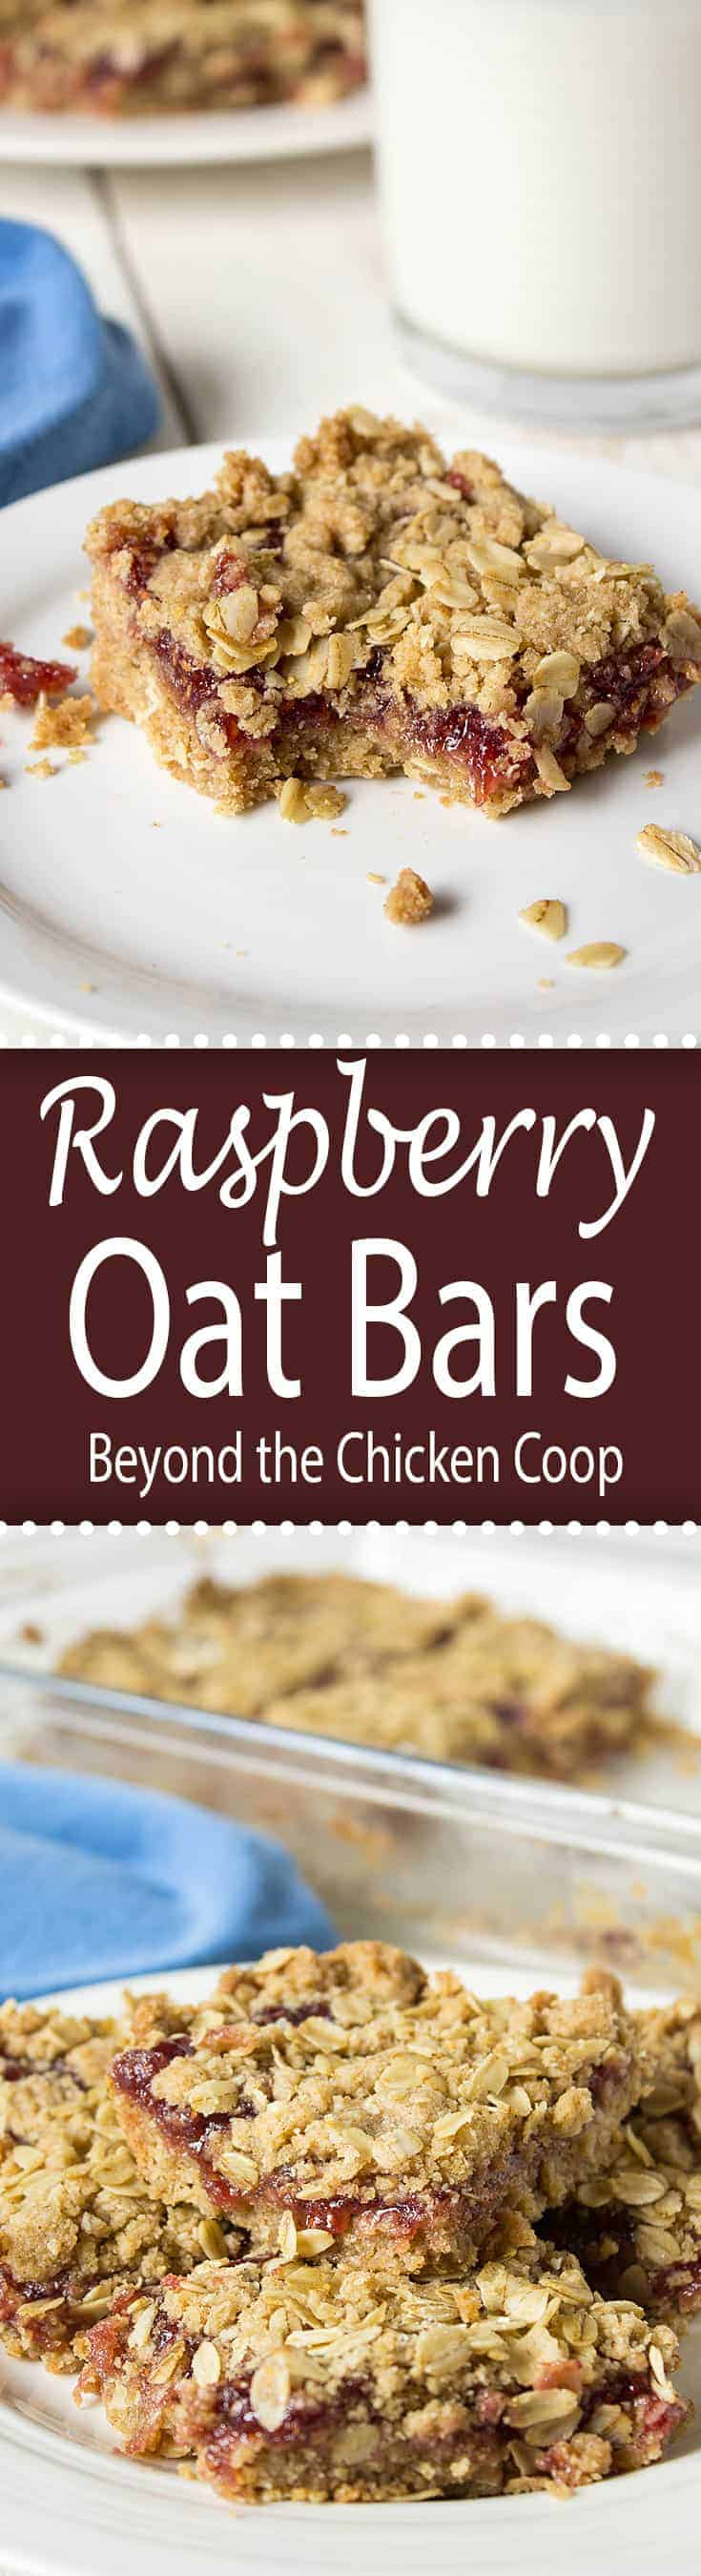 Raspberry jam makes these raspberry oat bars super easy to make and delicious to eat.